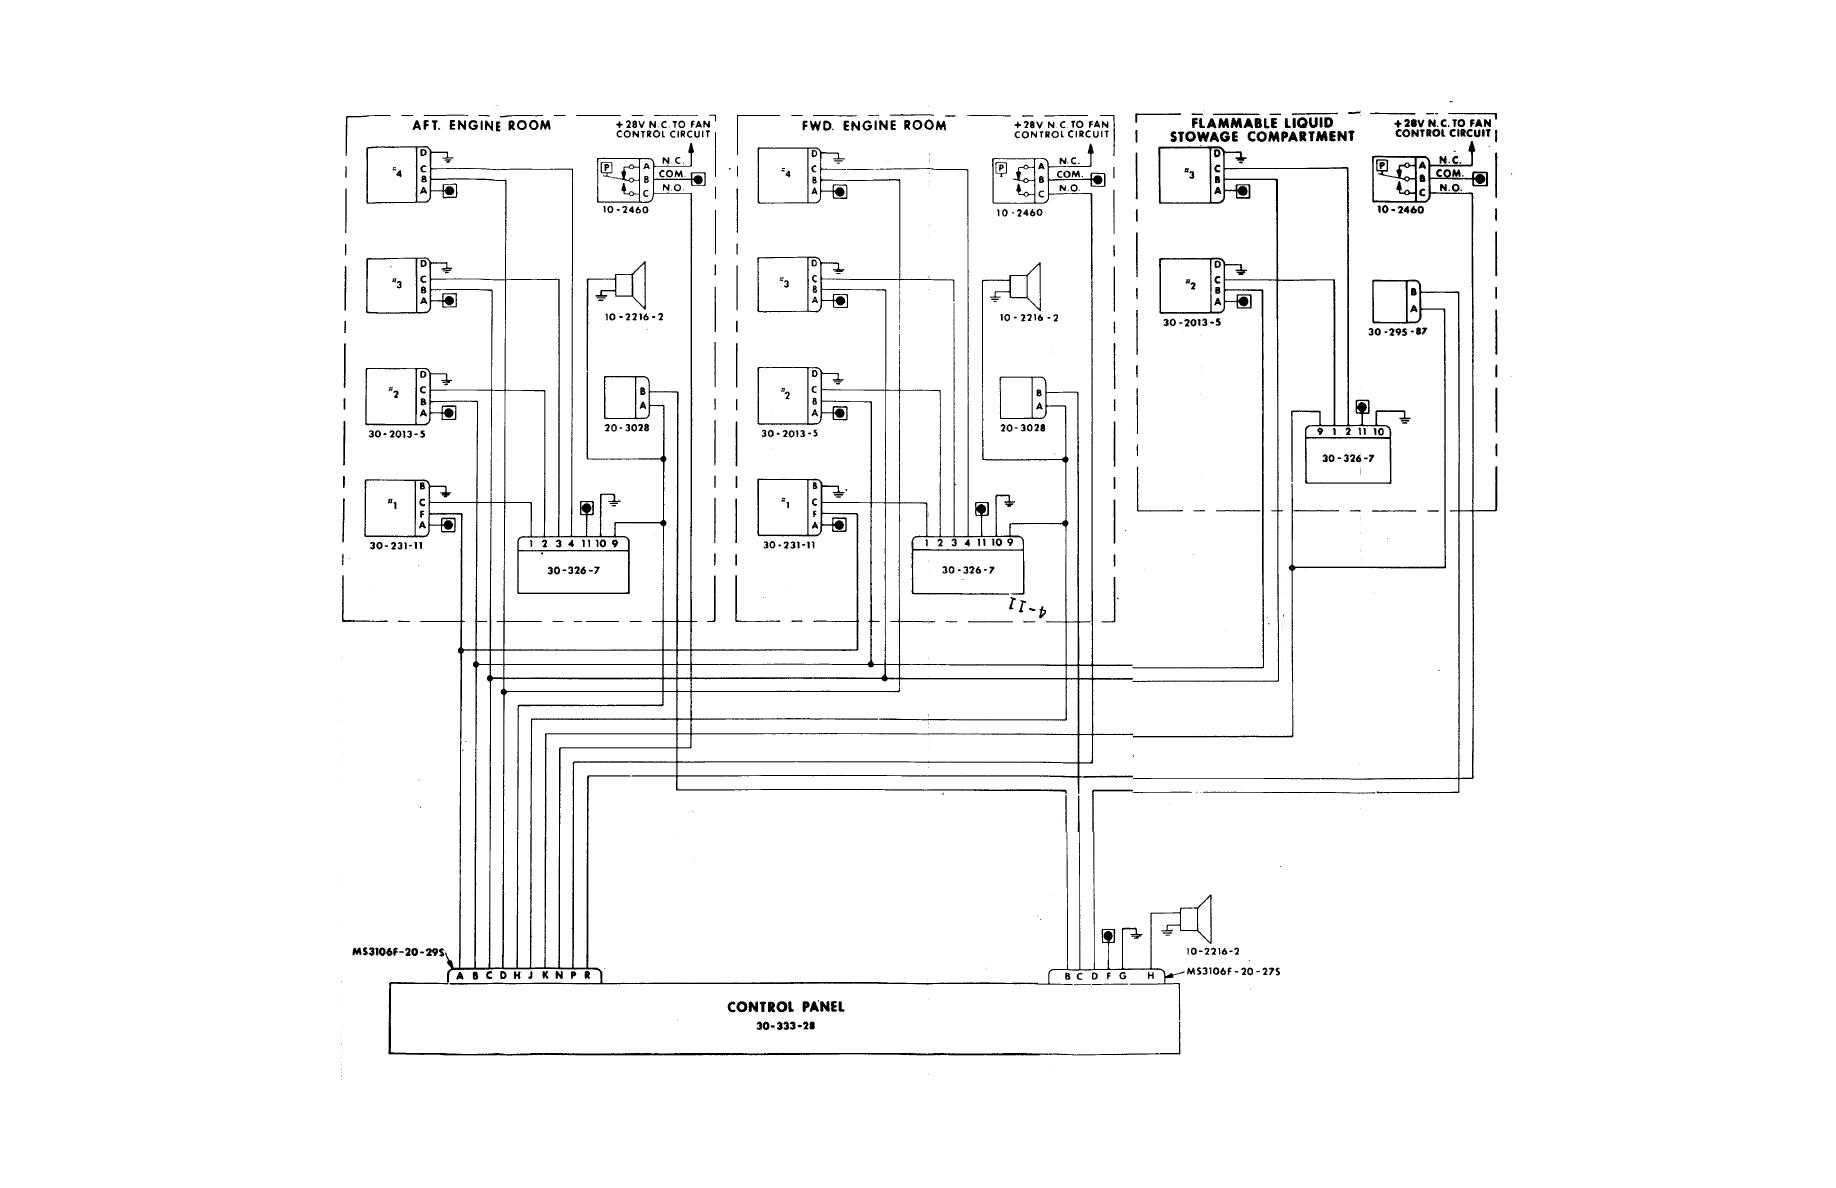 Fire Panel Wiring Diagram Diagrams Best Simple Boat Class A W C Mercedes Benz Forum Auto Basic Electrical